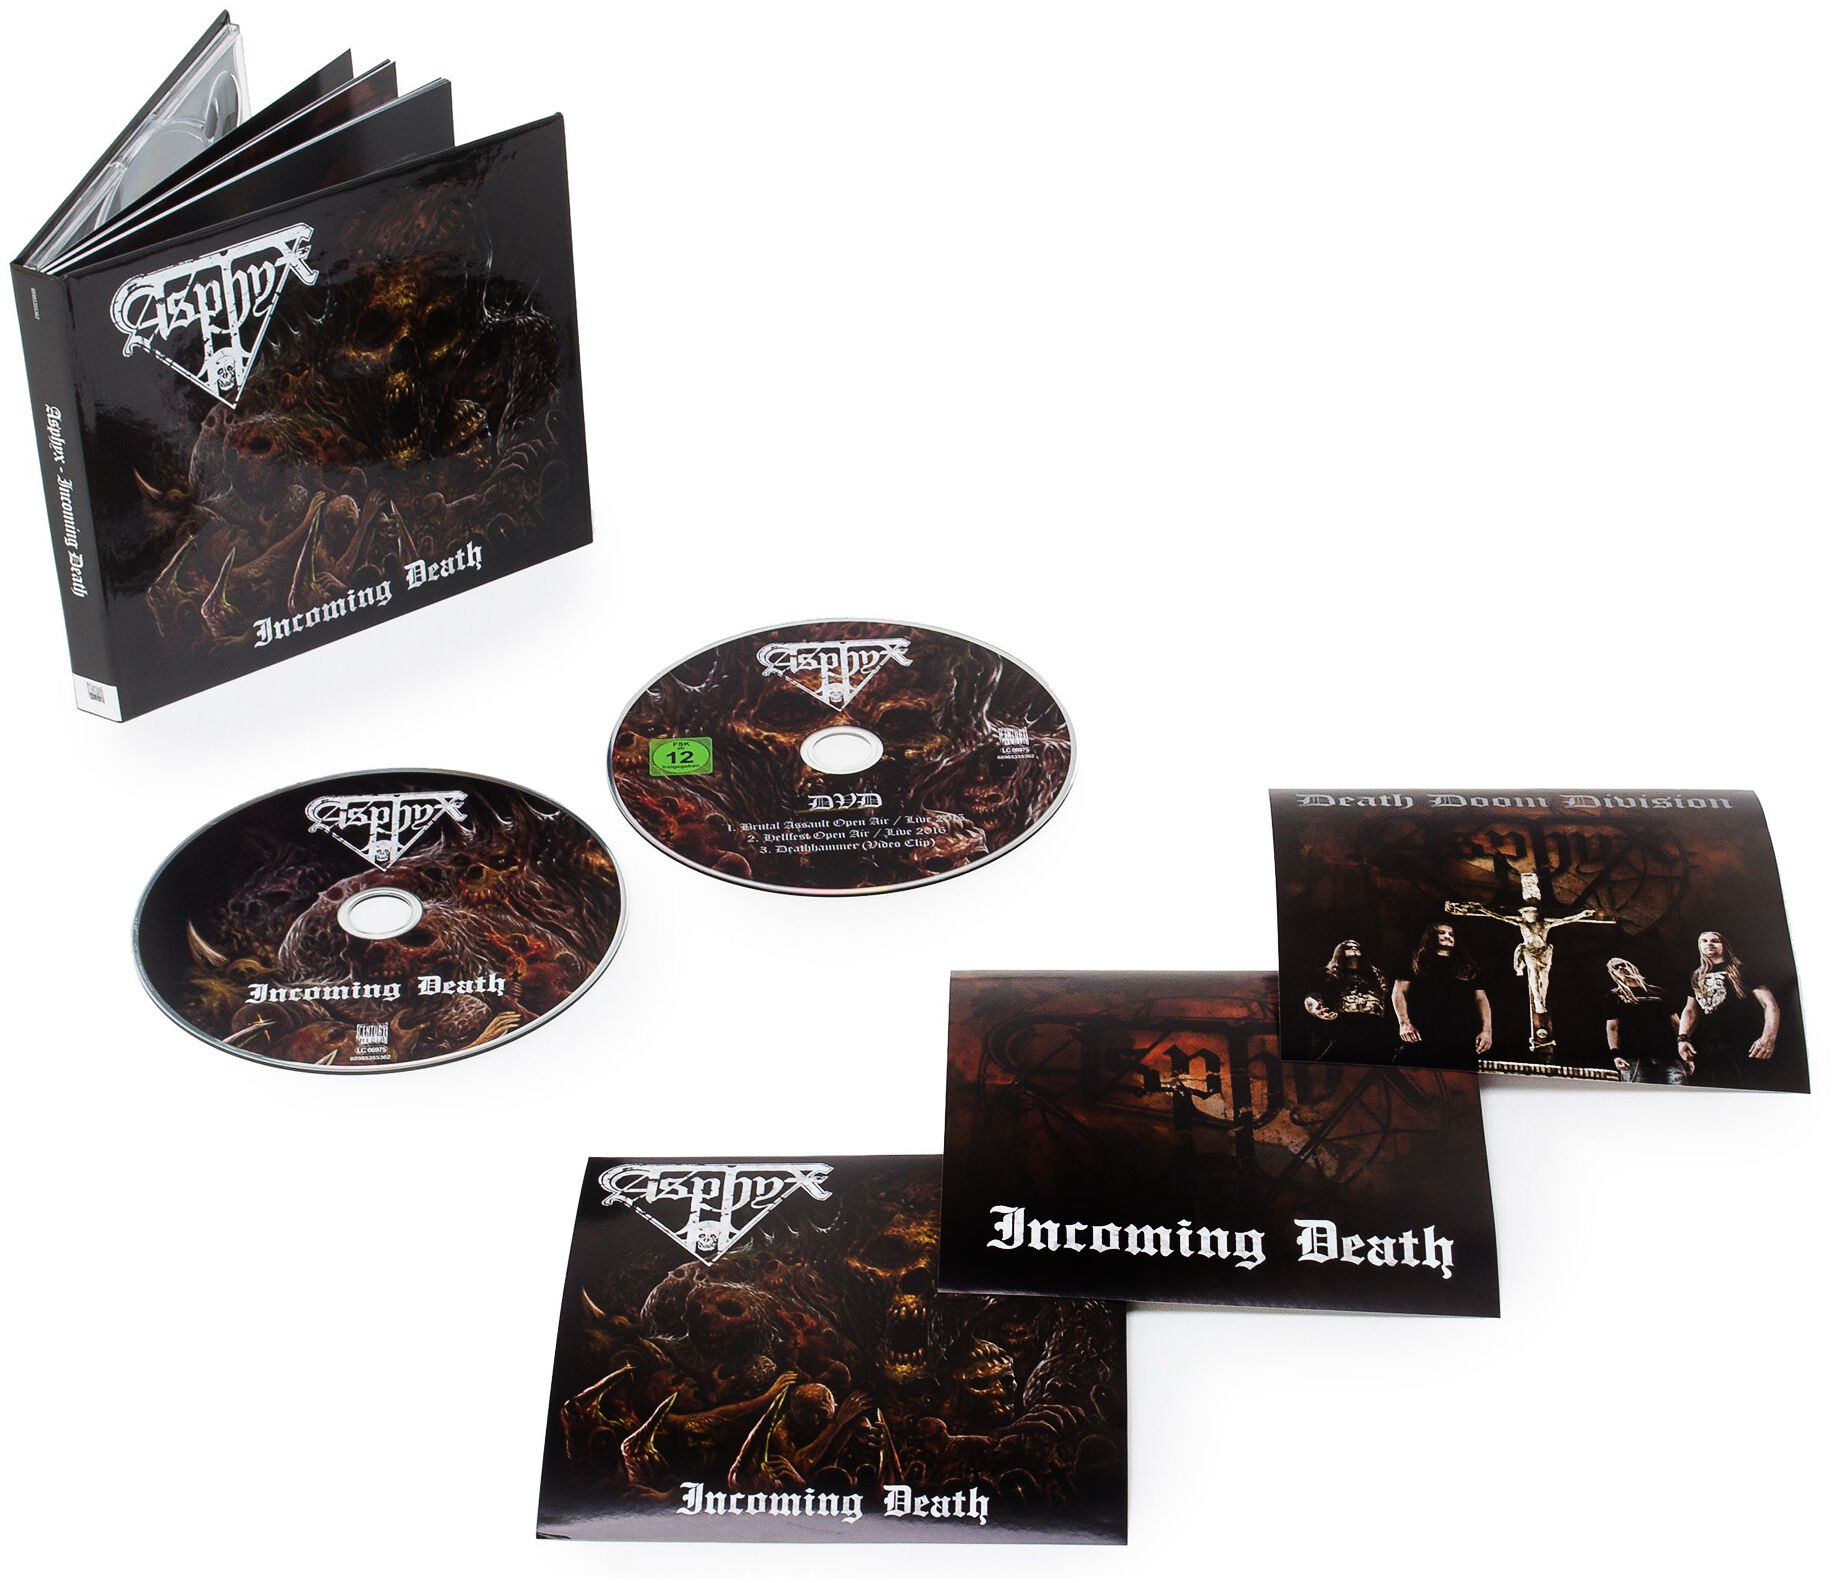 Image of Asphyx Incoming death CD & DVD Standard